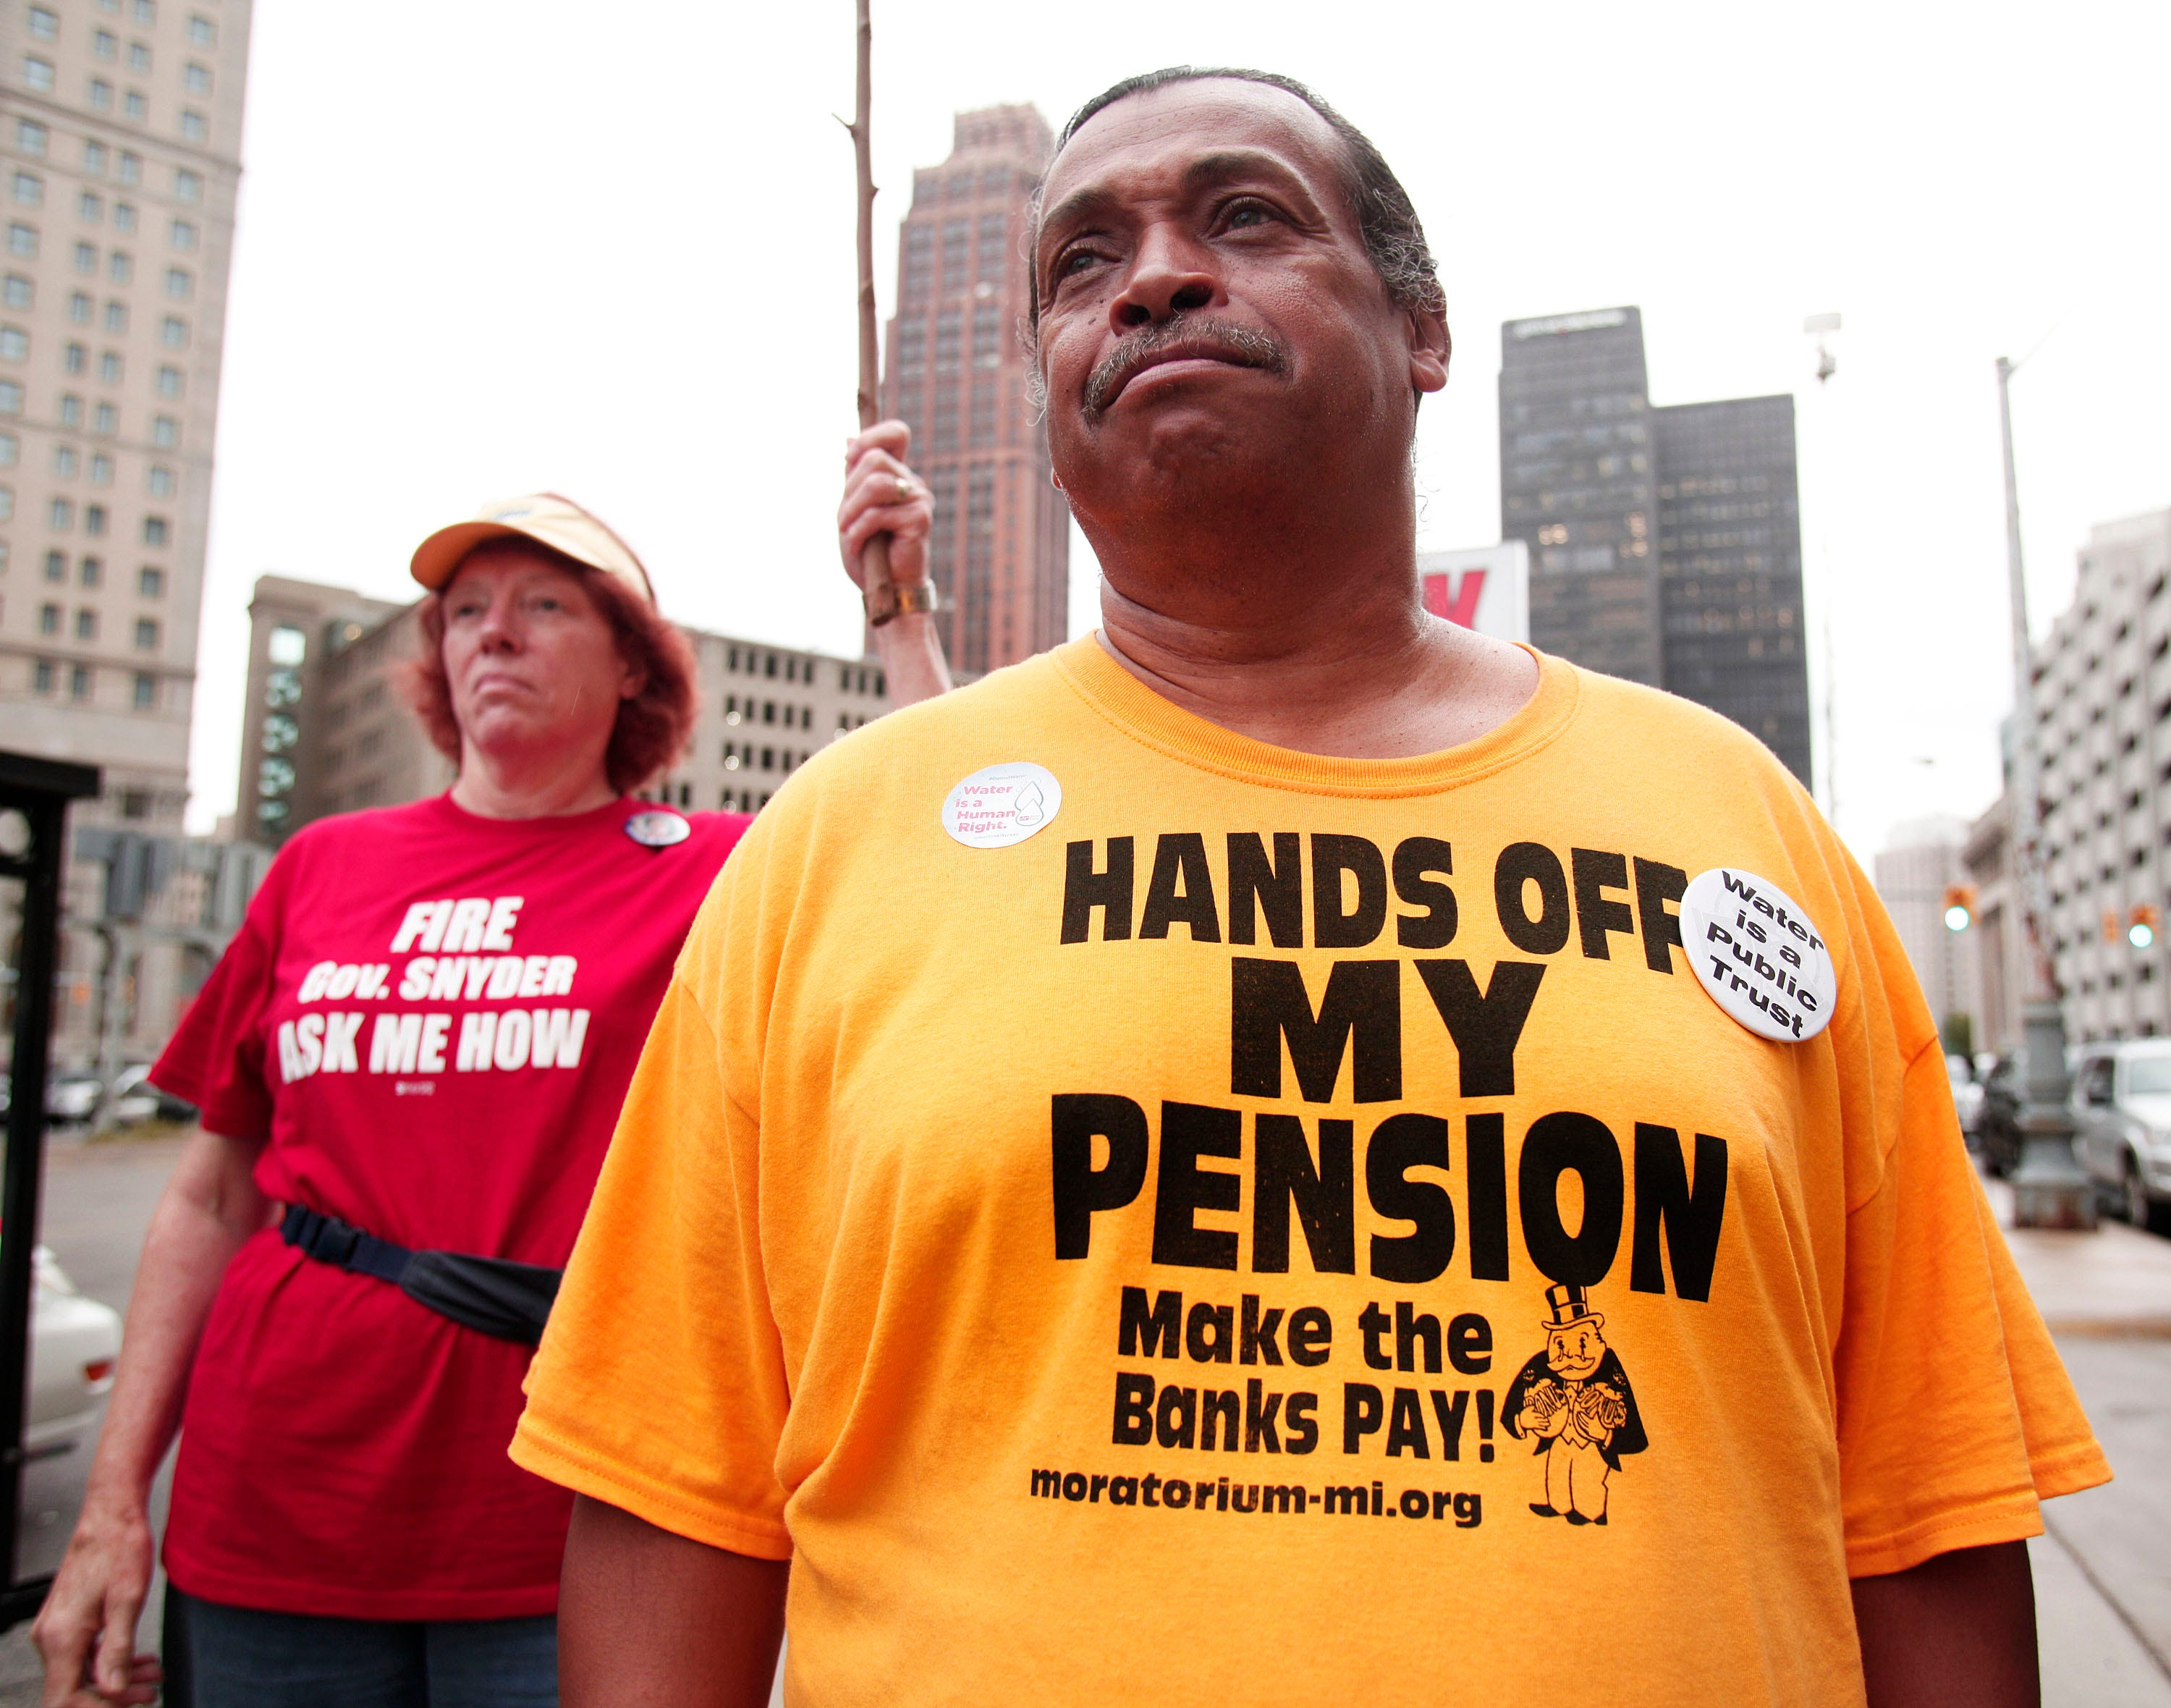 William Davis of Detroit, Michigan, a City of Detroit retiree who worked for the city's water treatment plant for 24 years, protests at the start of the City of Detroit's historic bankruptcy trial at th Federal Courthouse September 2, 2014 in Detroit, Michigan.